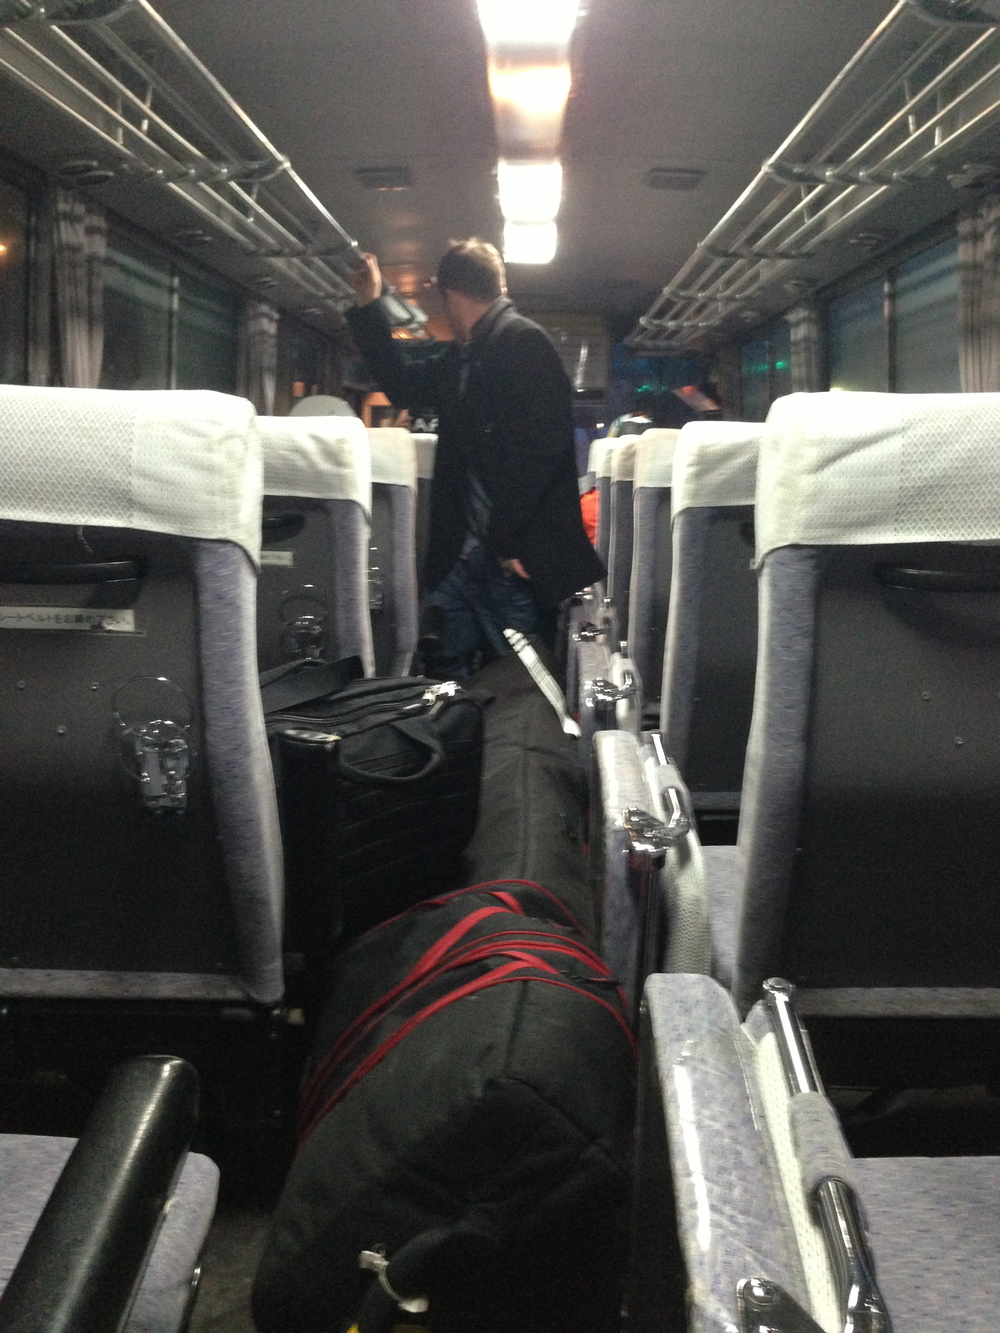 There is room for skis in the aisle of a bus